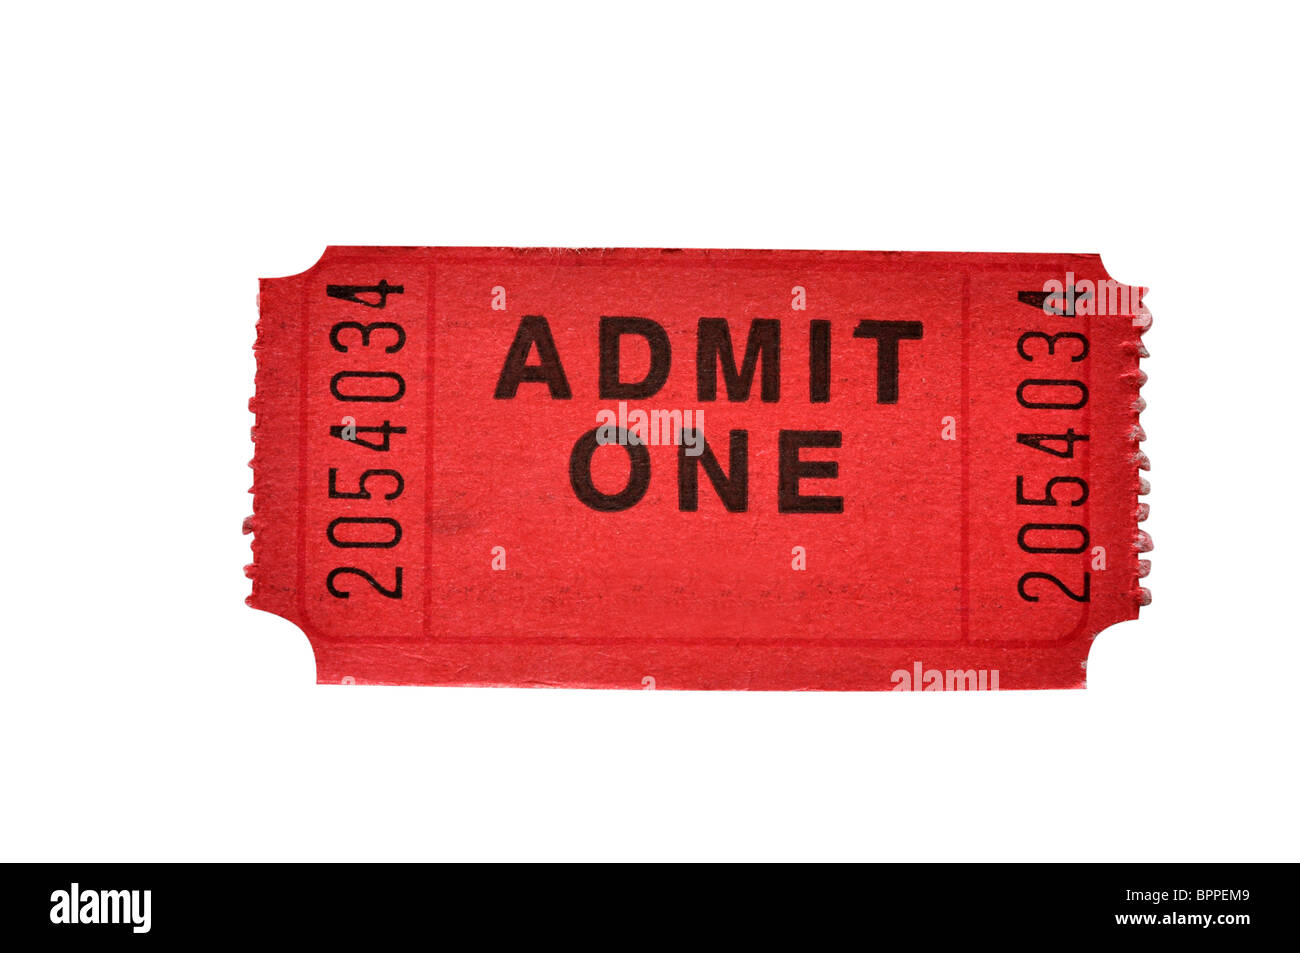 Admission ticket isolated on white background with clipping path. - Stock Image